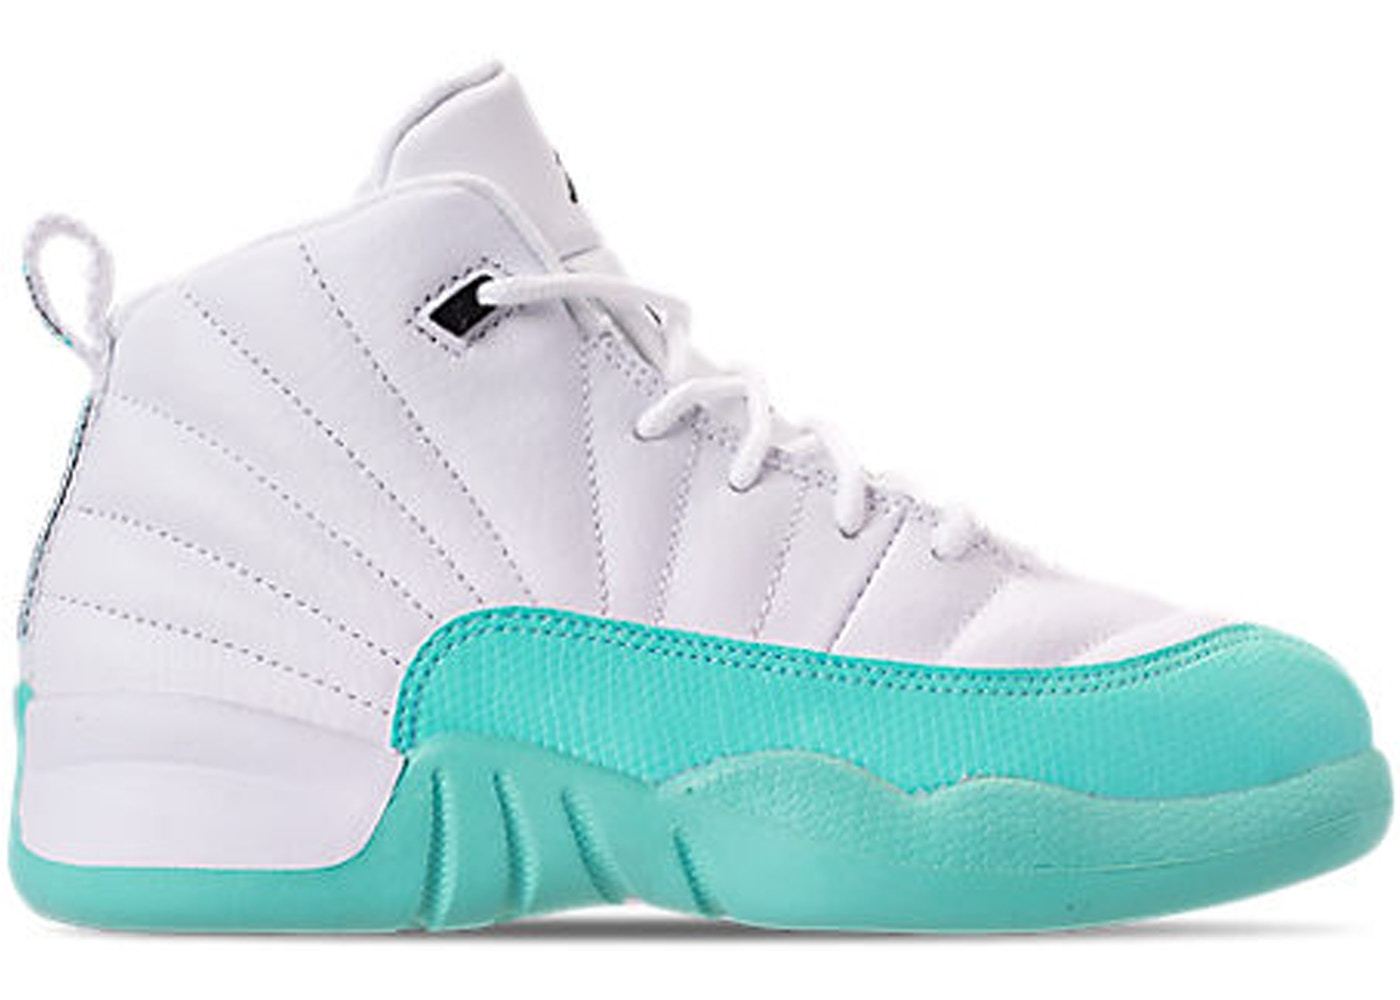 6d56aaea863b5c Jordan 12 Retro Light Aqua (PS) - 510816-100